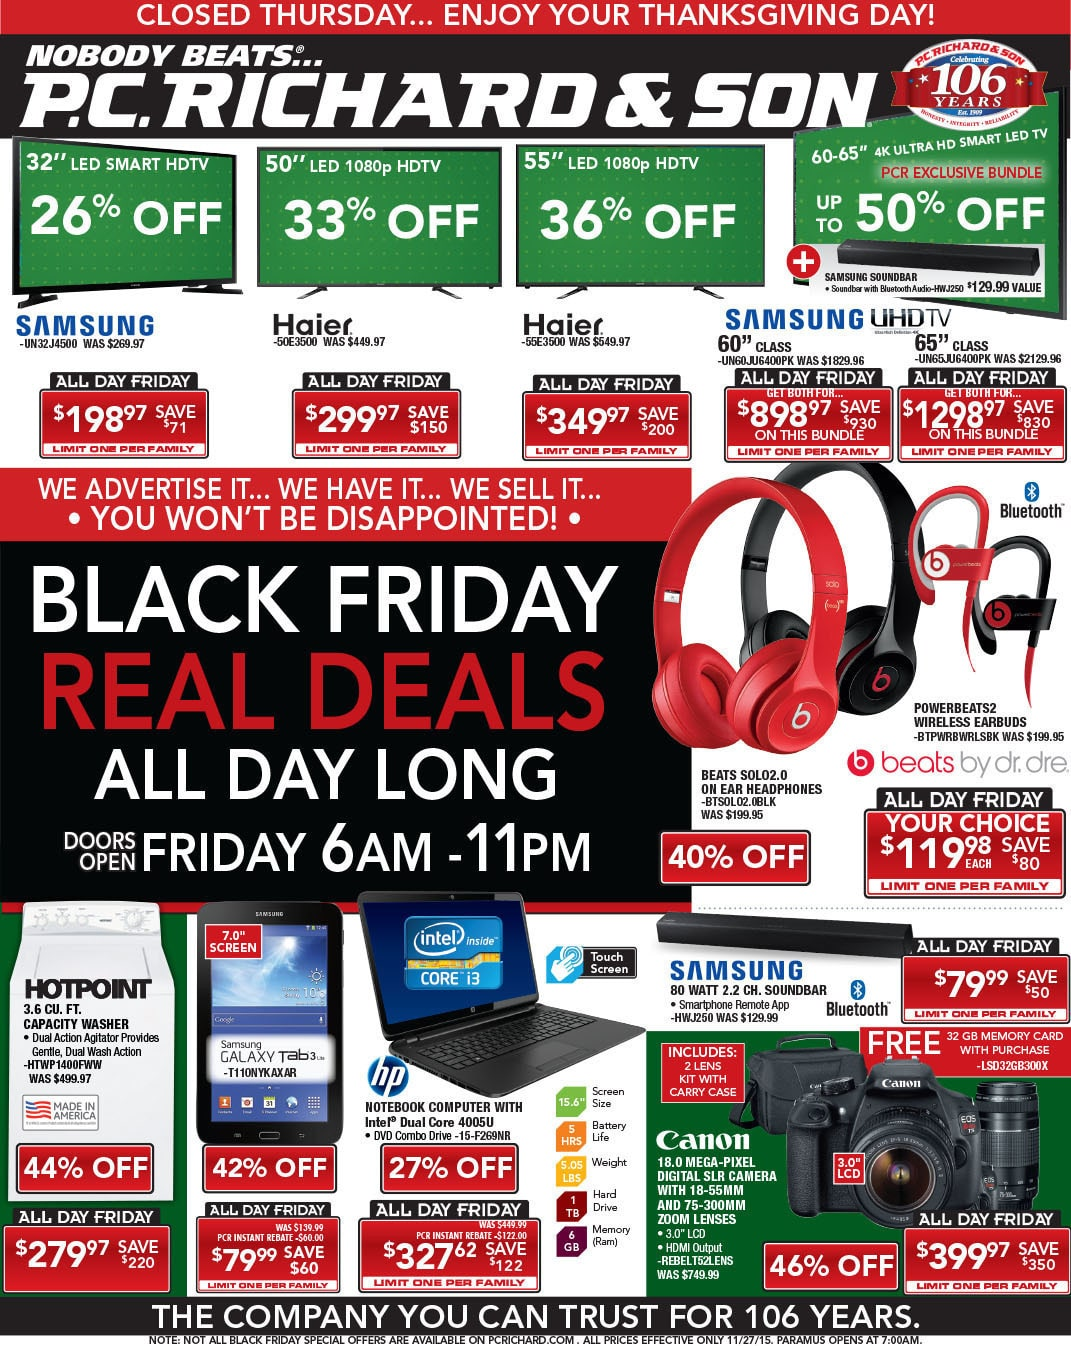 PC Richard Cyber Monday Ad, Sale & Deals Update your home without breaking the bank when you shop PC Richards Cyber Monday sale. Find everything you need for entertainment, like TV deals and discount Bluetooth speakers.3/5(3).